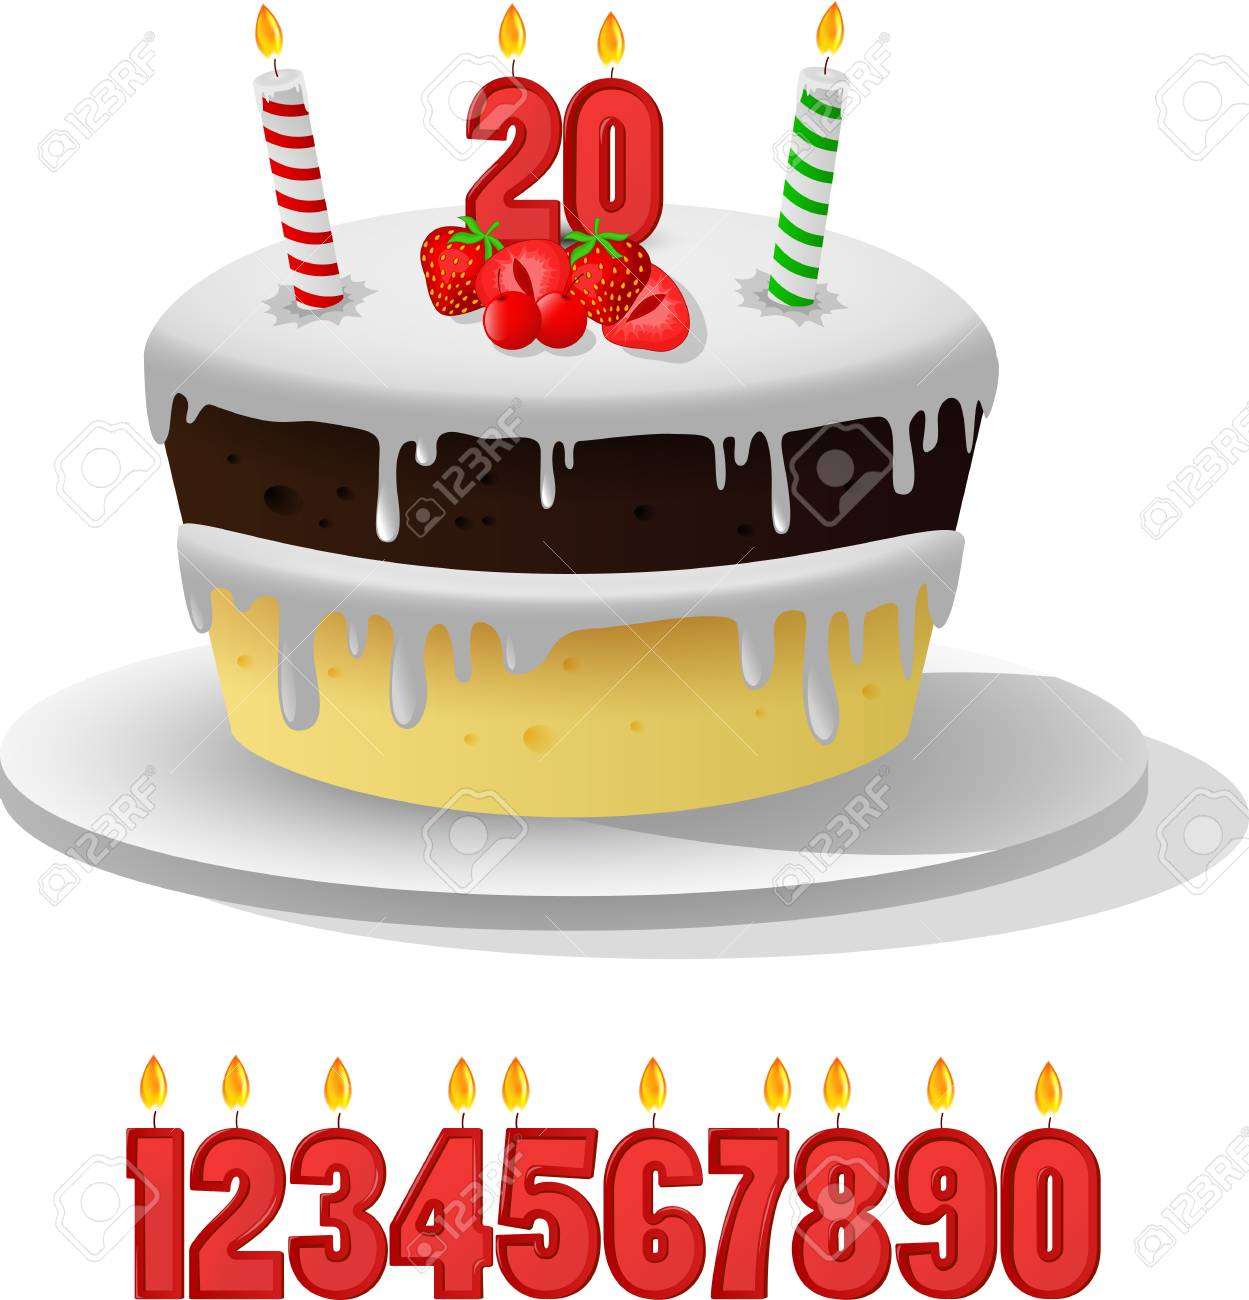 Birthday Cake With Candles Anniversarry 2 Stock Vector